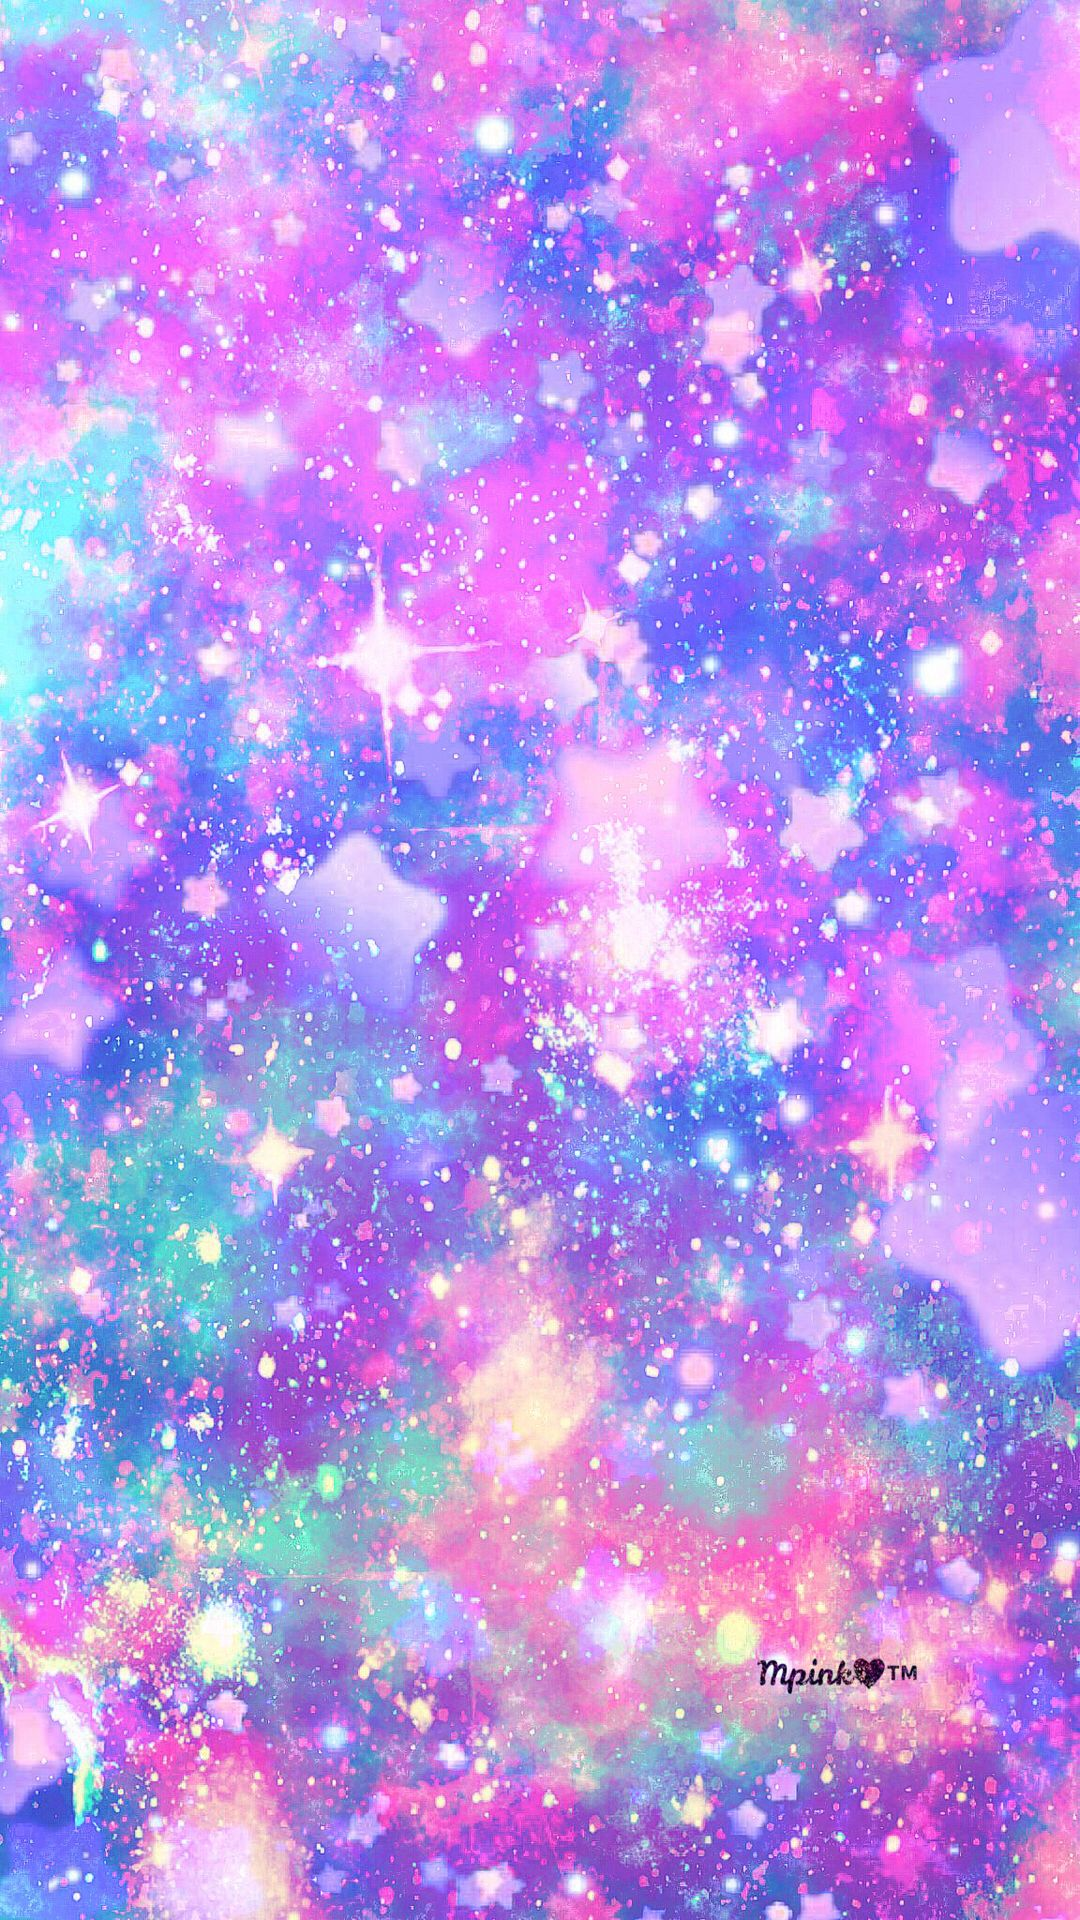 Pastel stars galaxy wallpaper androidwallpaper - Colorful galaxy wallpaper ...